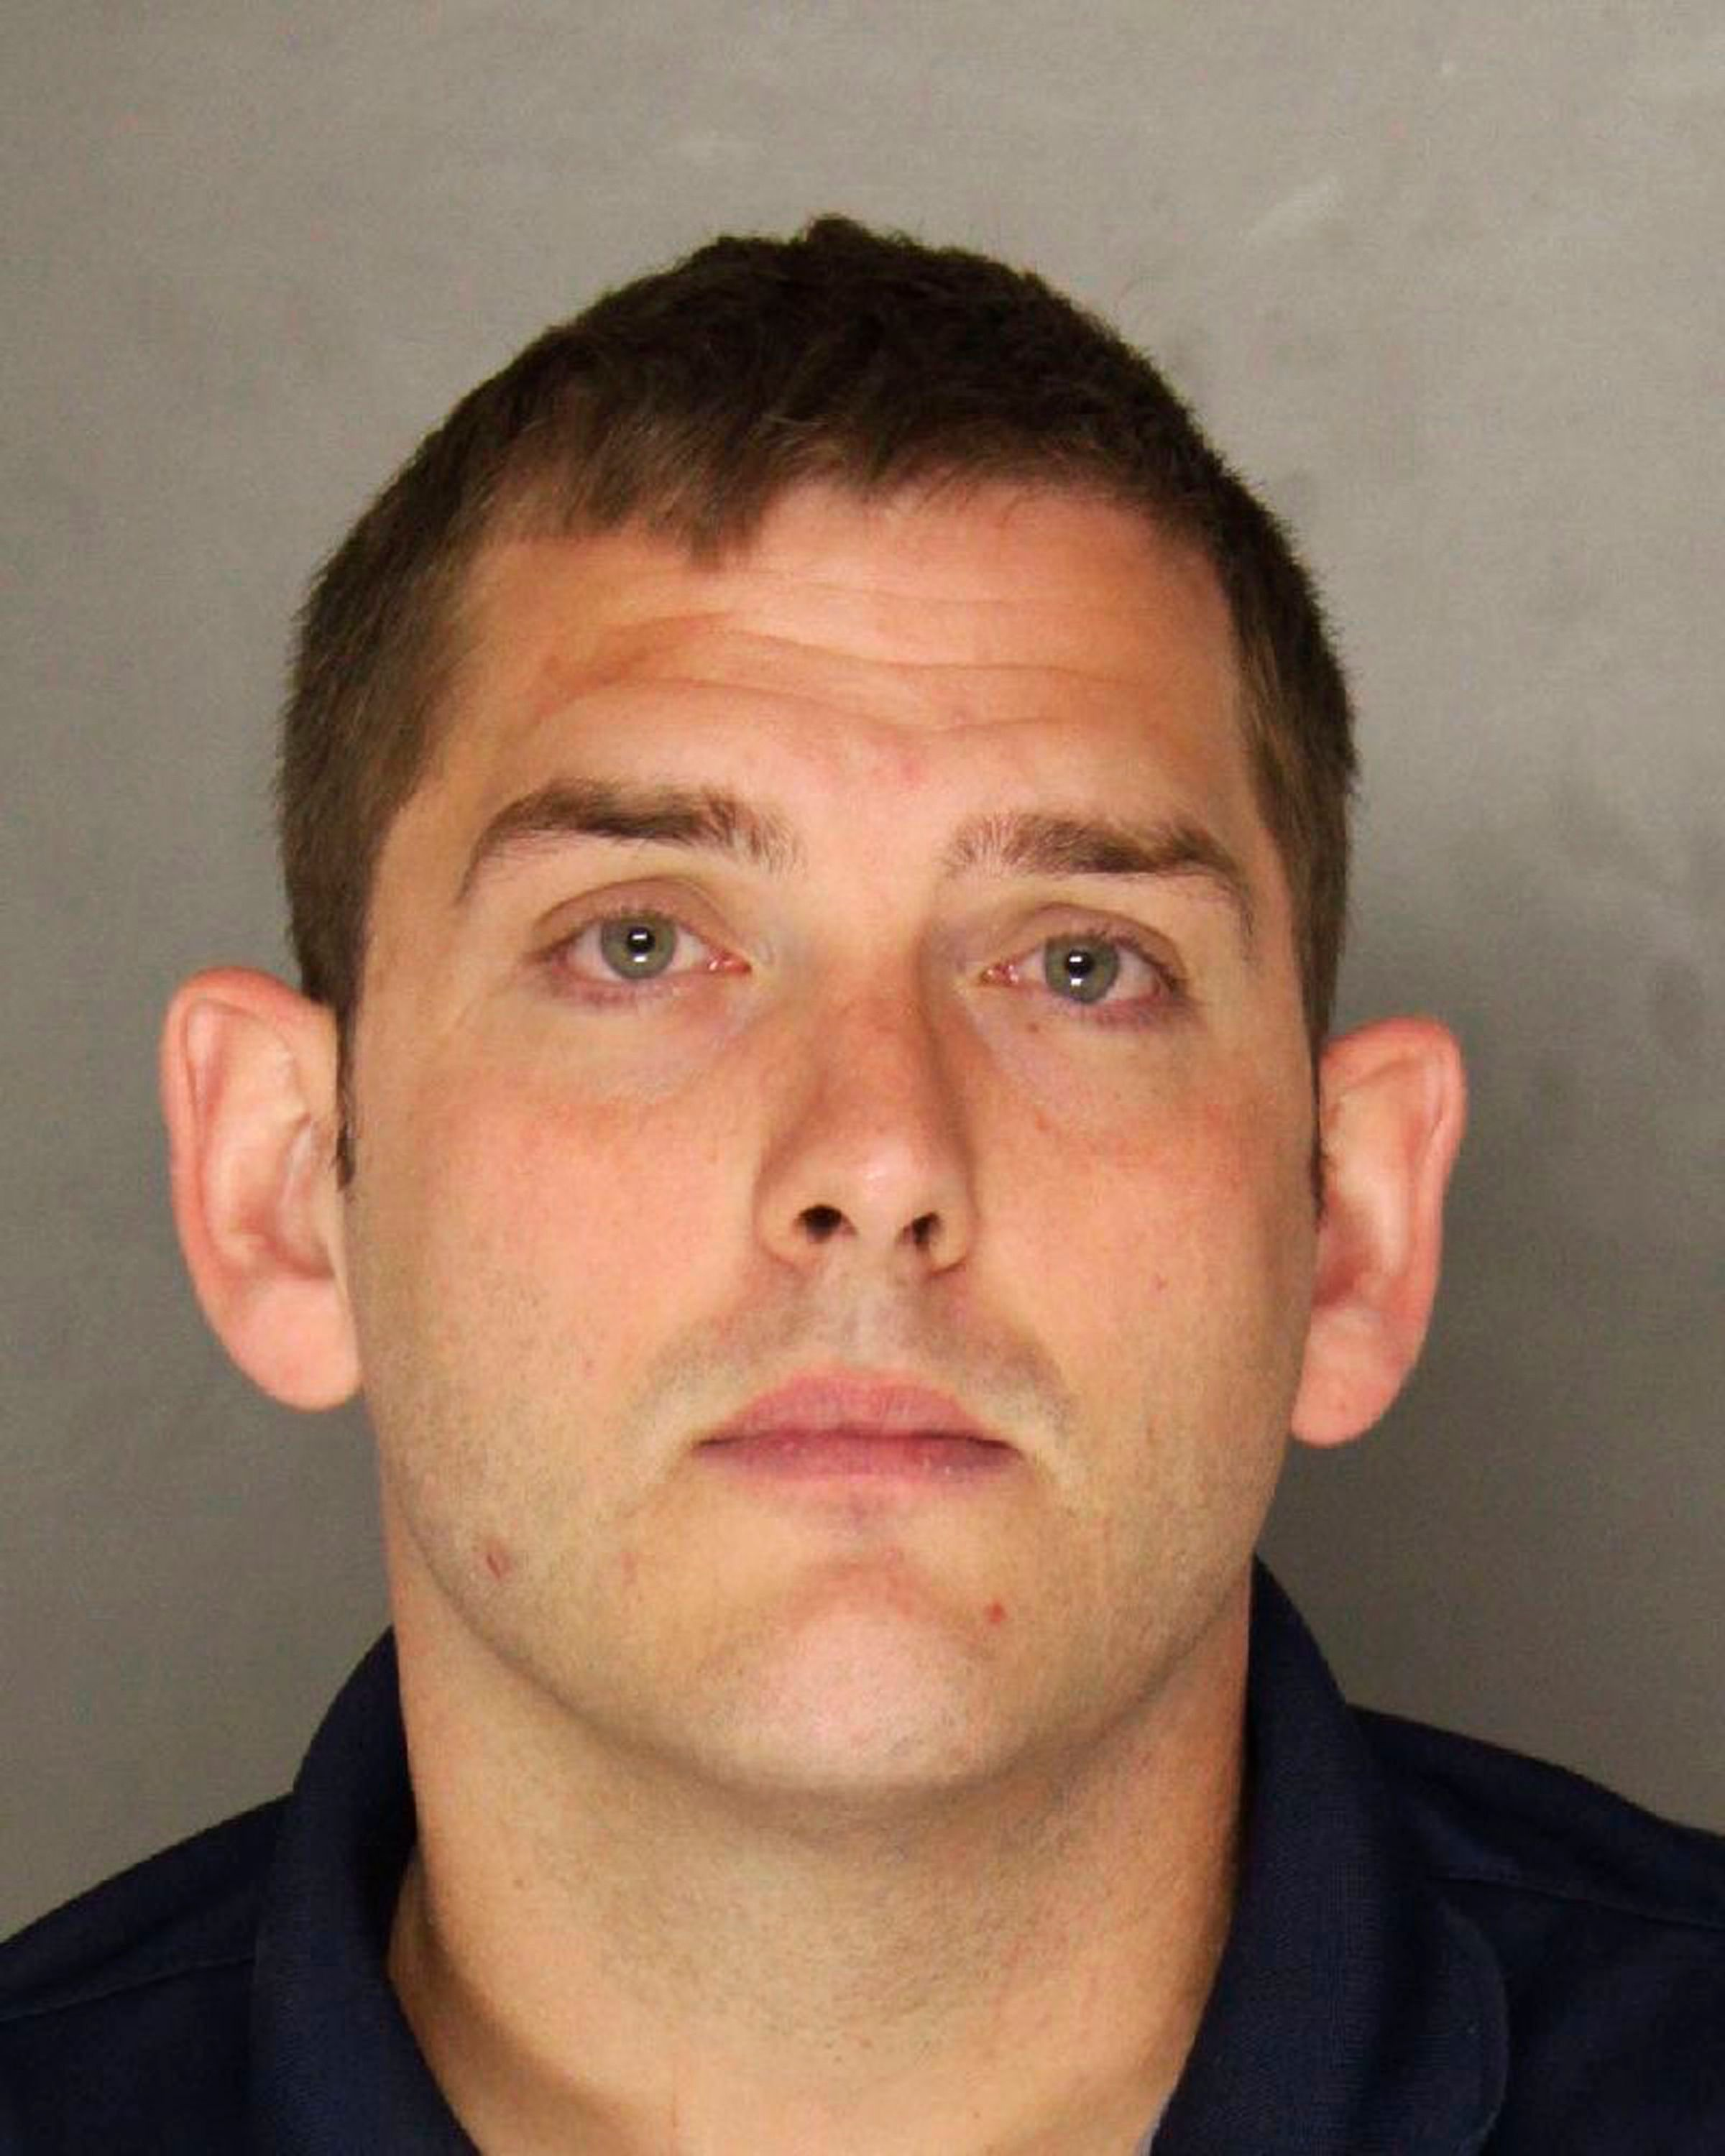 This undated photo provided by the Allegheny County District Attorney shows Michael Rosfeld, an East Pittsburgh, Pa., police officer. Rosfeld was charged with homicide, in the shooting death of Antwon Rose Jr. after a traffic stop June 19 in East Pittsburgh